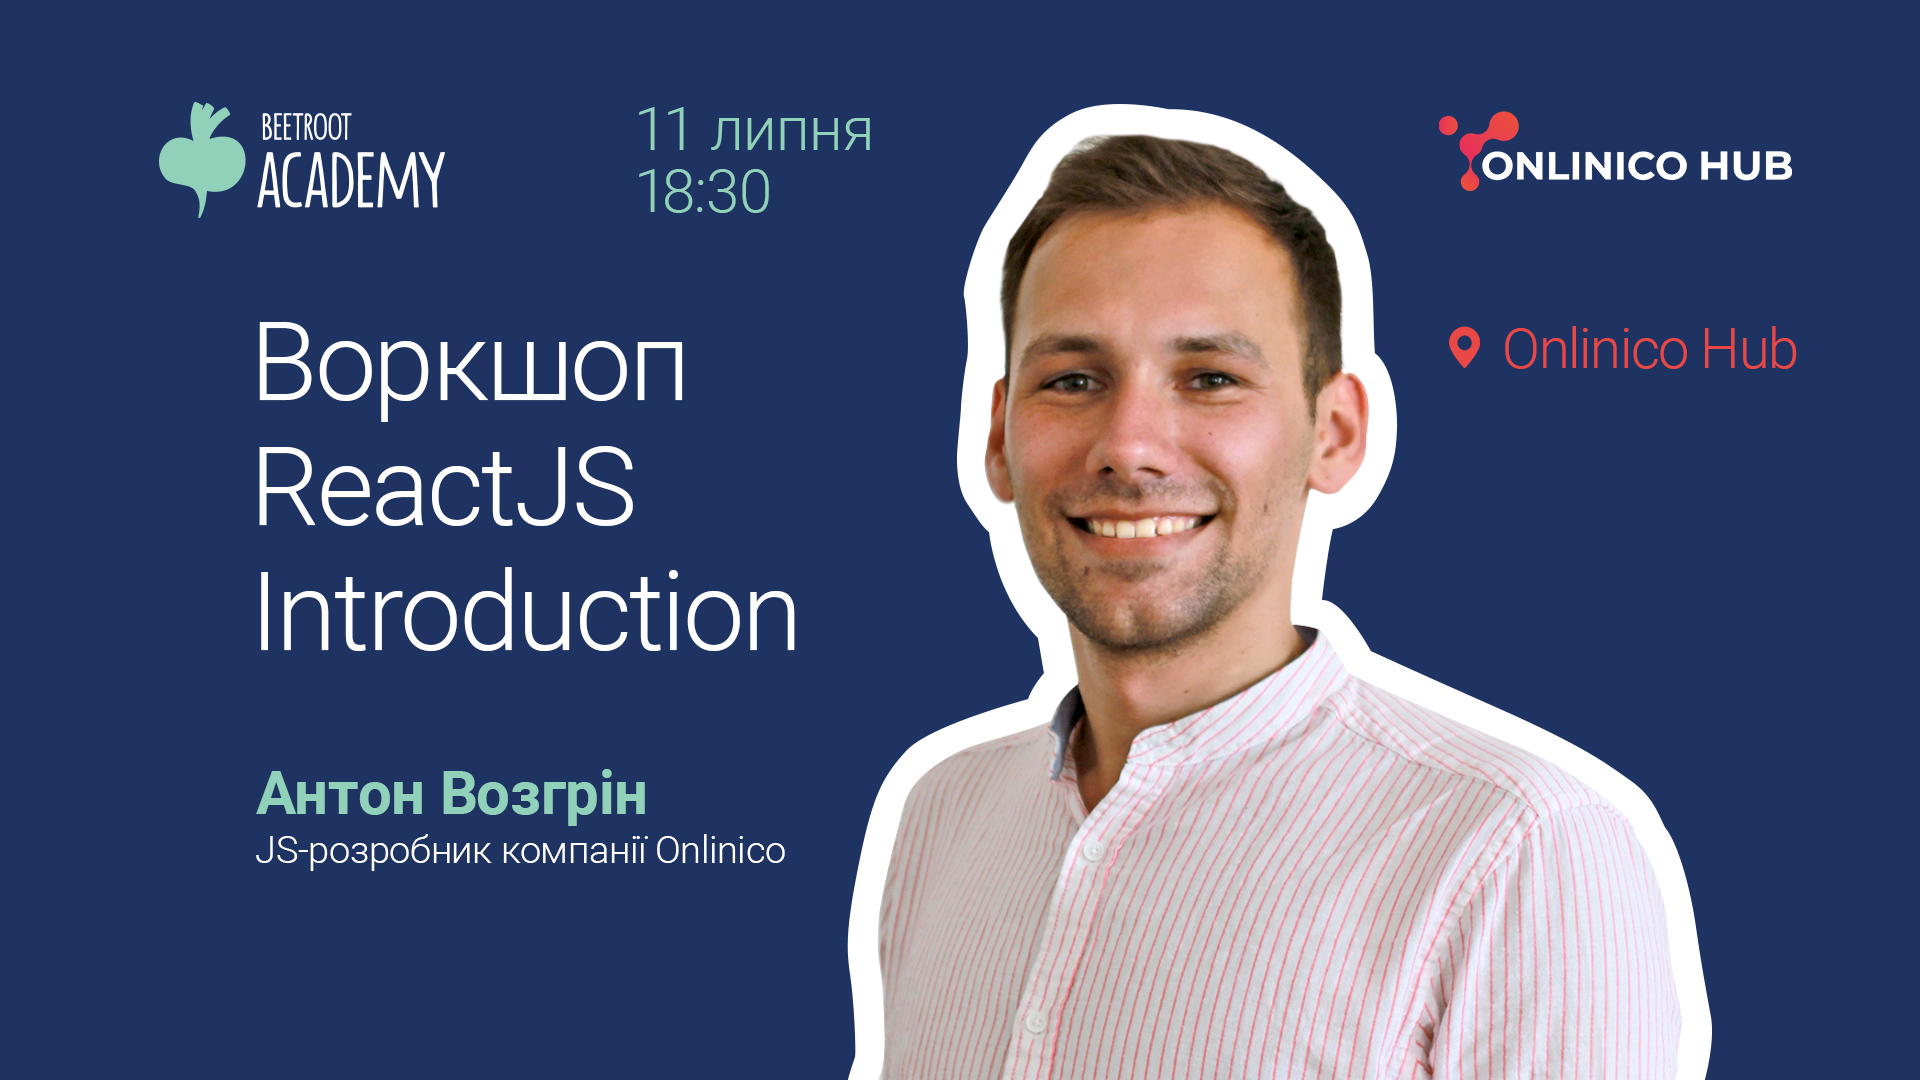 Воркшоп ReactJS Introduction